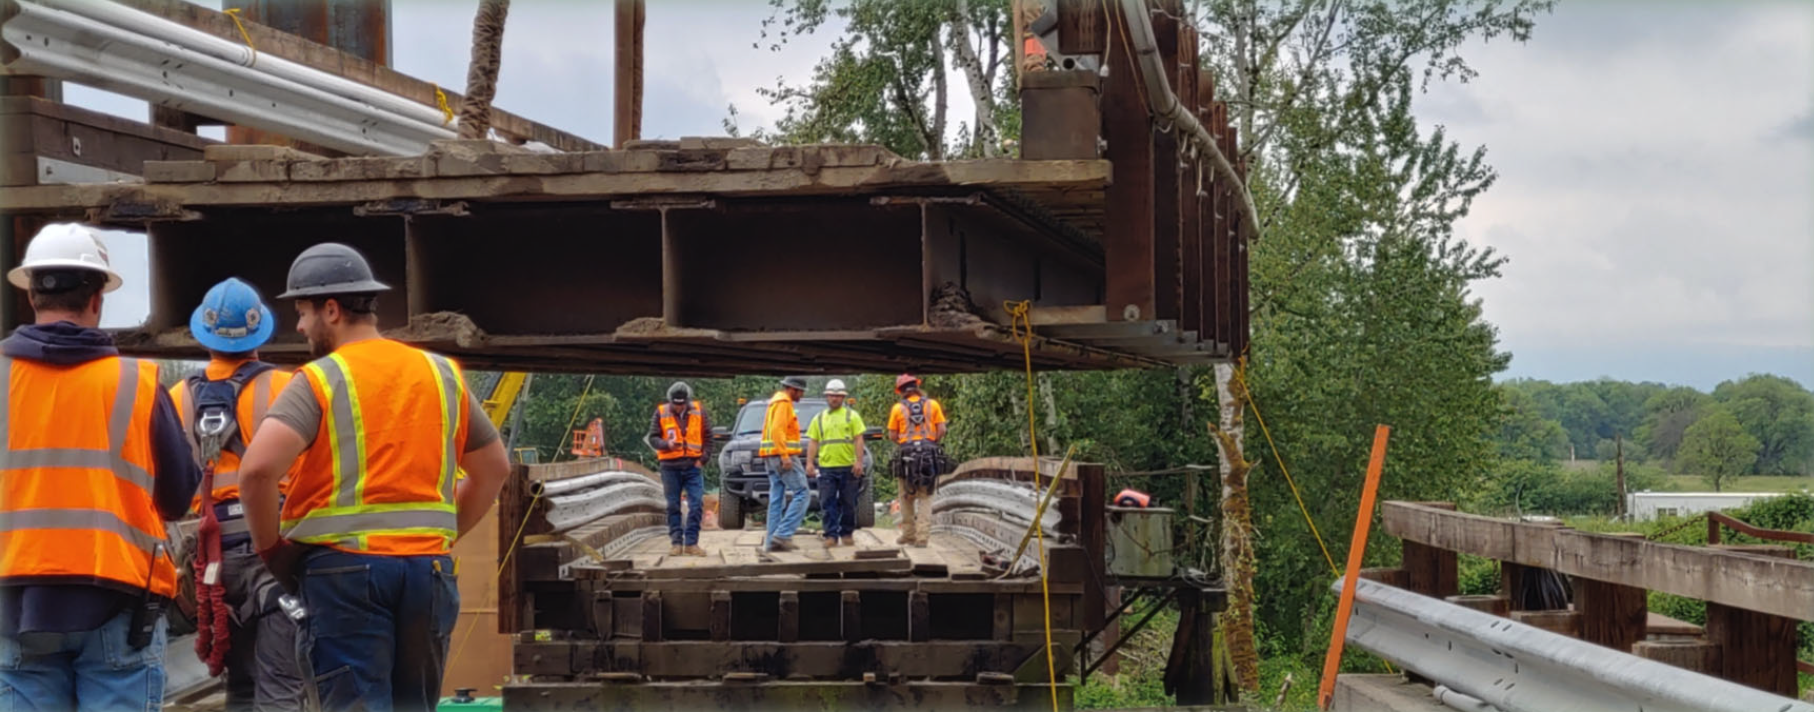 Crews remove the center span of the existing bridge to barge in a crane to work on the new bridge. Did you even know the old bridge could do that?! Don't worry about driving across it on the weekends, though. The old bridge was designed to have the center span removed for large vessels to pass.